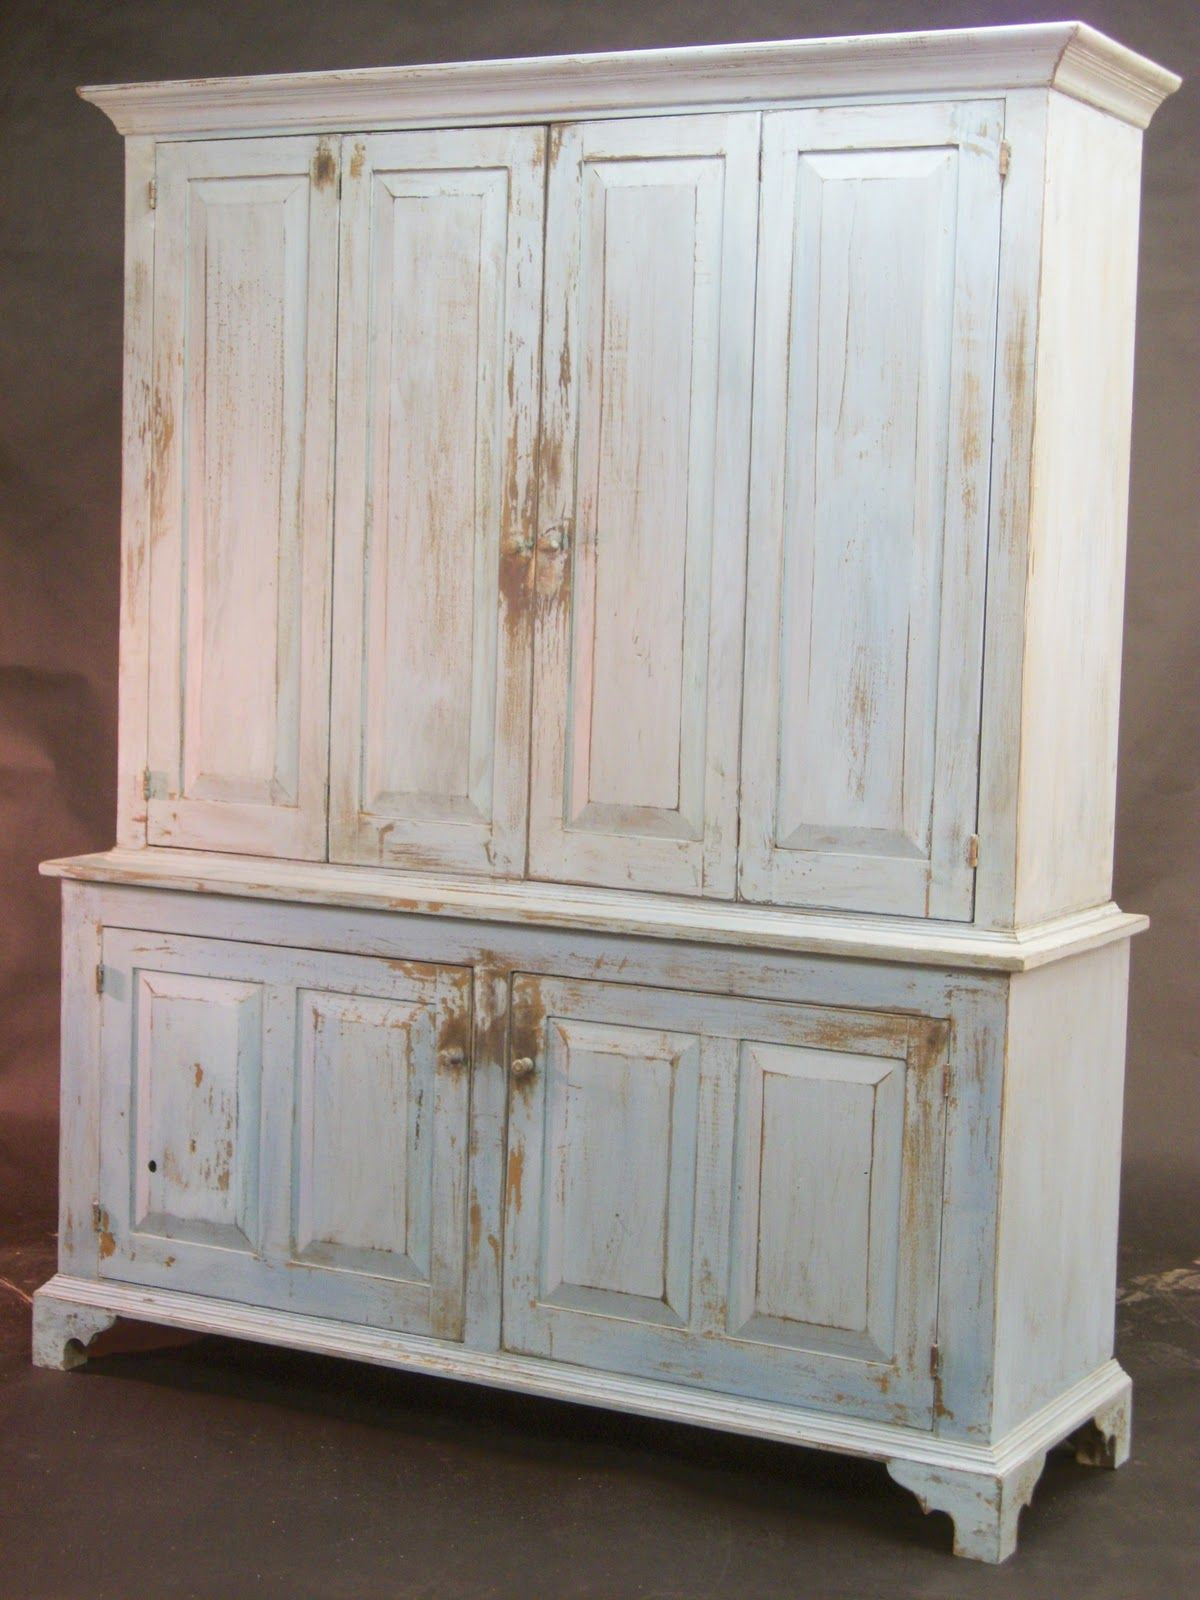 Flat Screen Tv Cabinets With Doors | Flat Screen TV Cabinet